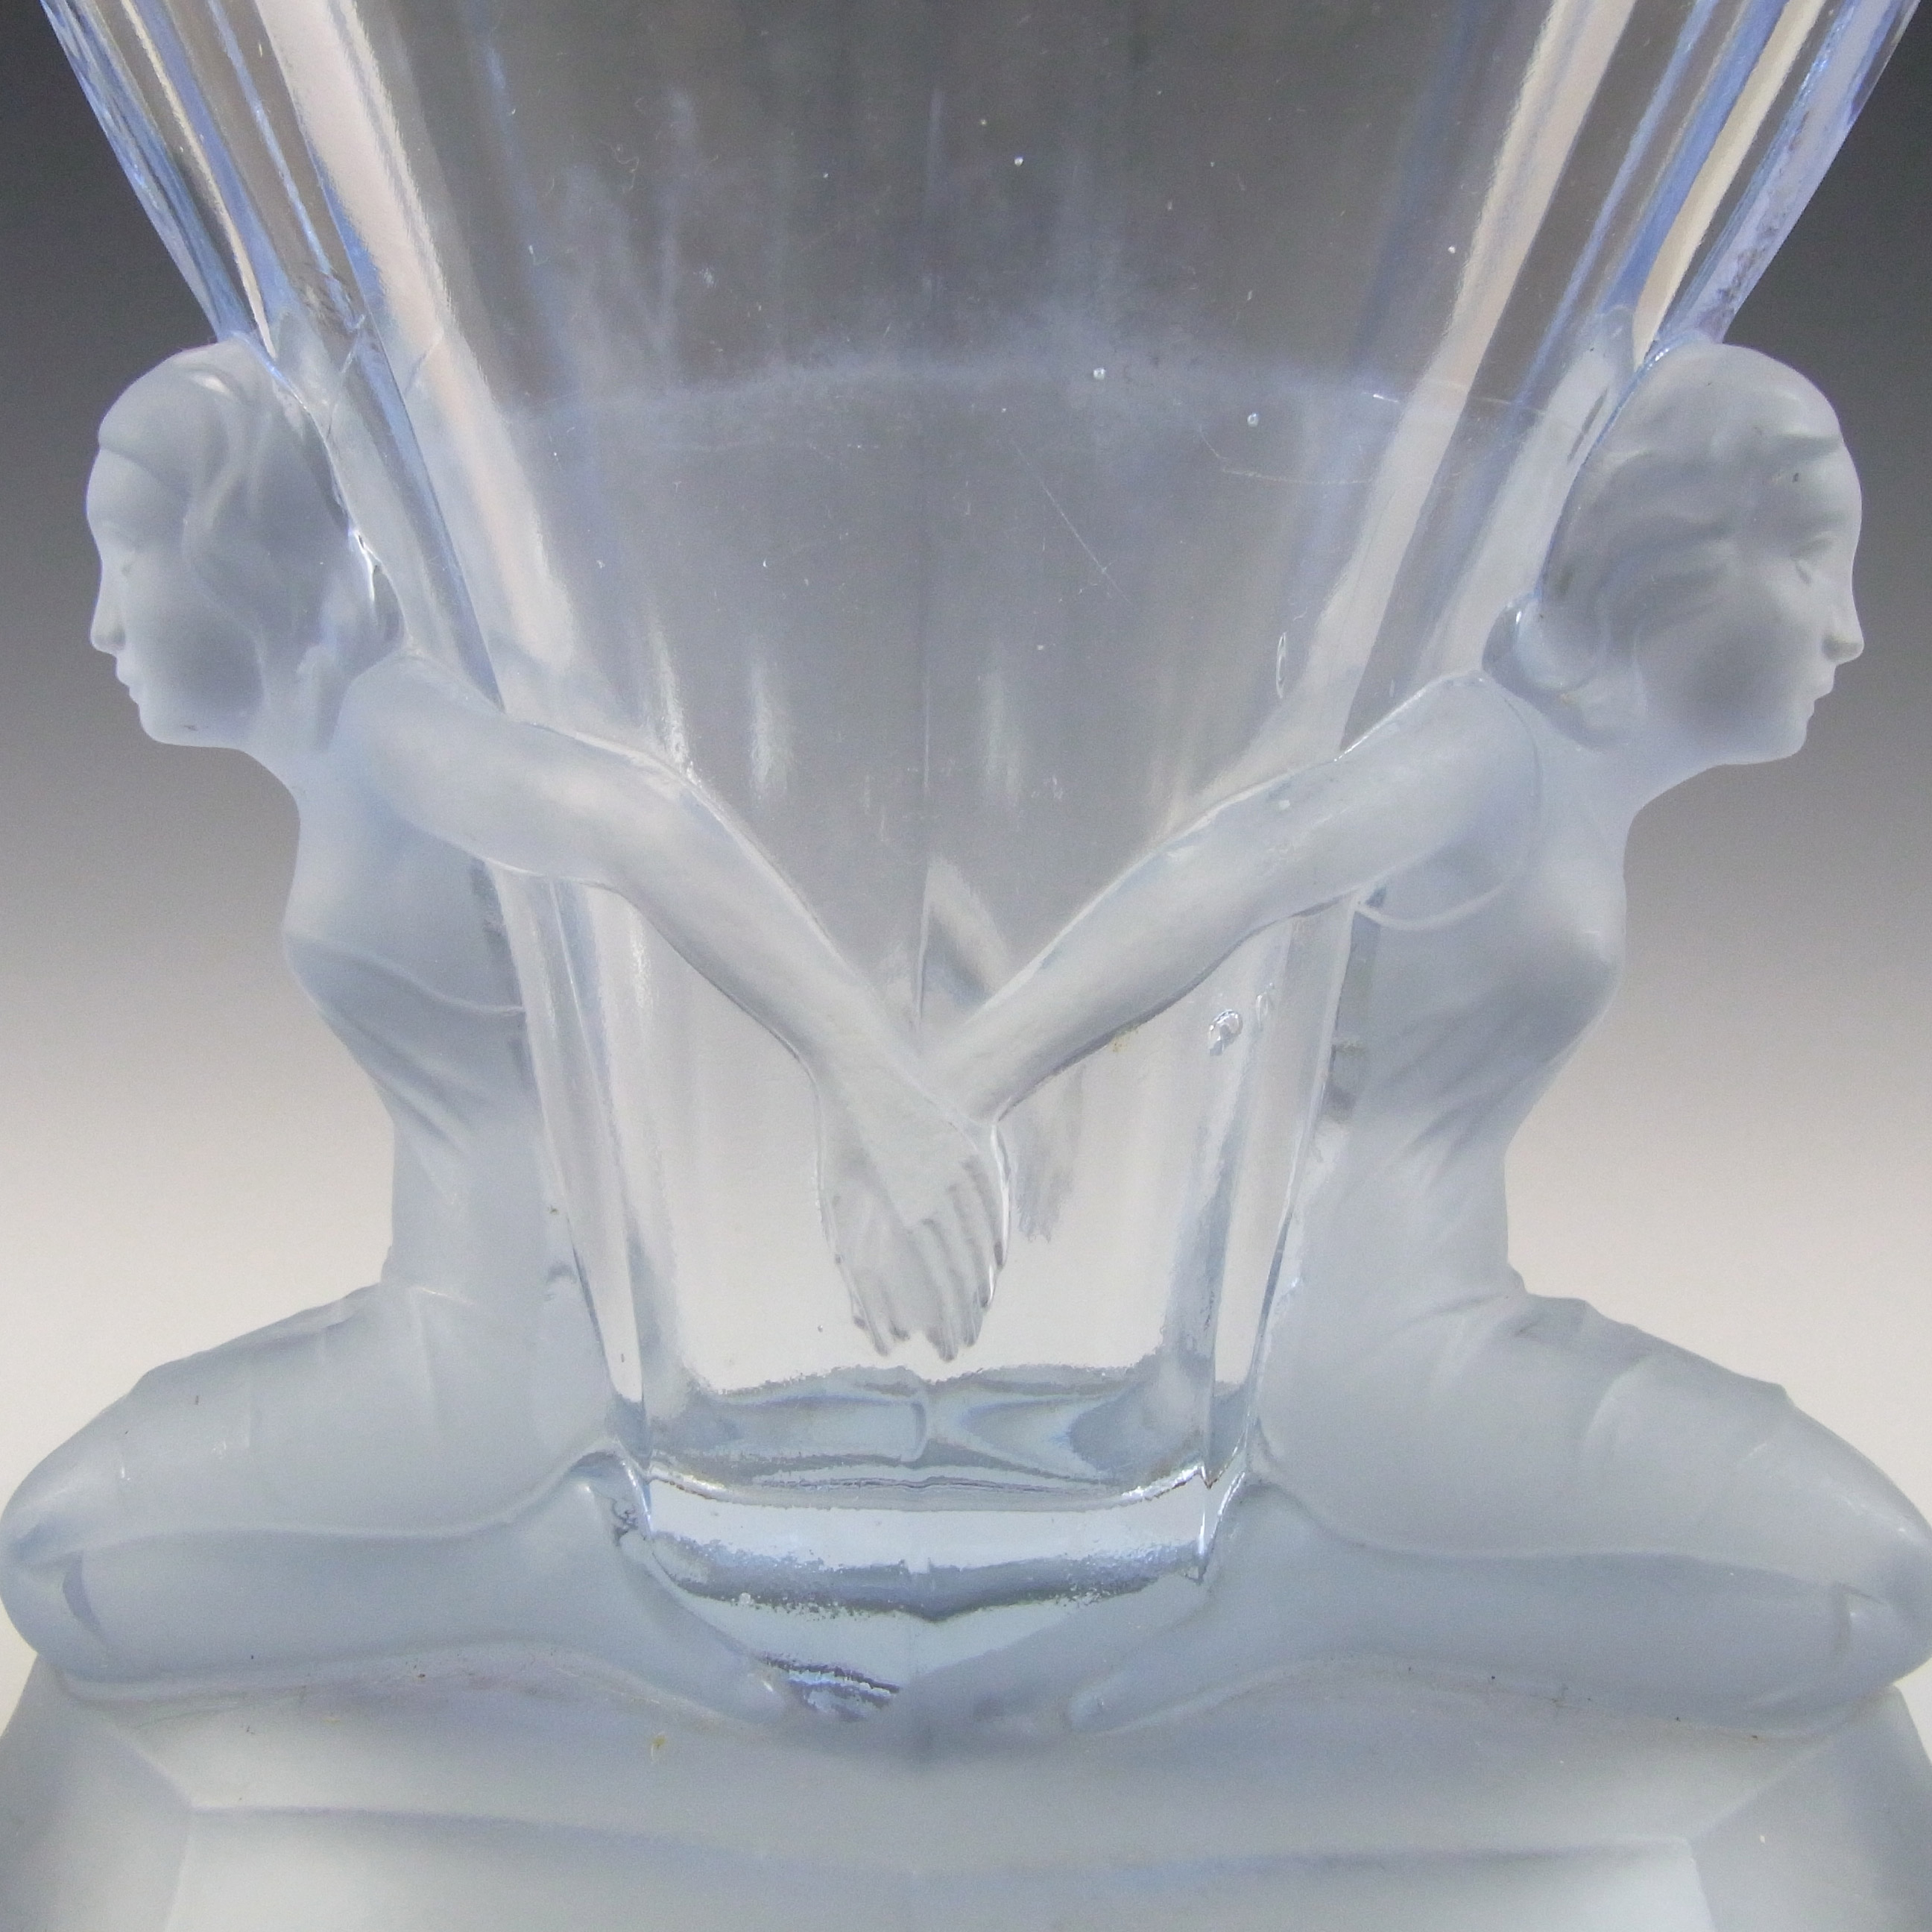 Walther & Sohne 1930's Art Deco Blue Glass 'Windsor' Vase - Click Image to Close